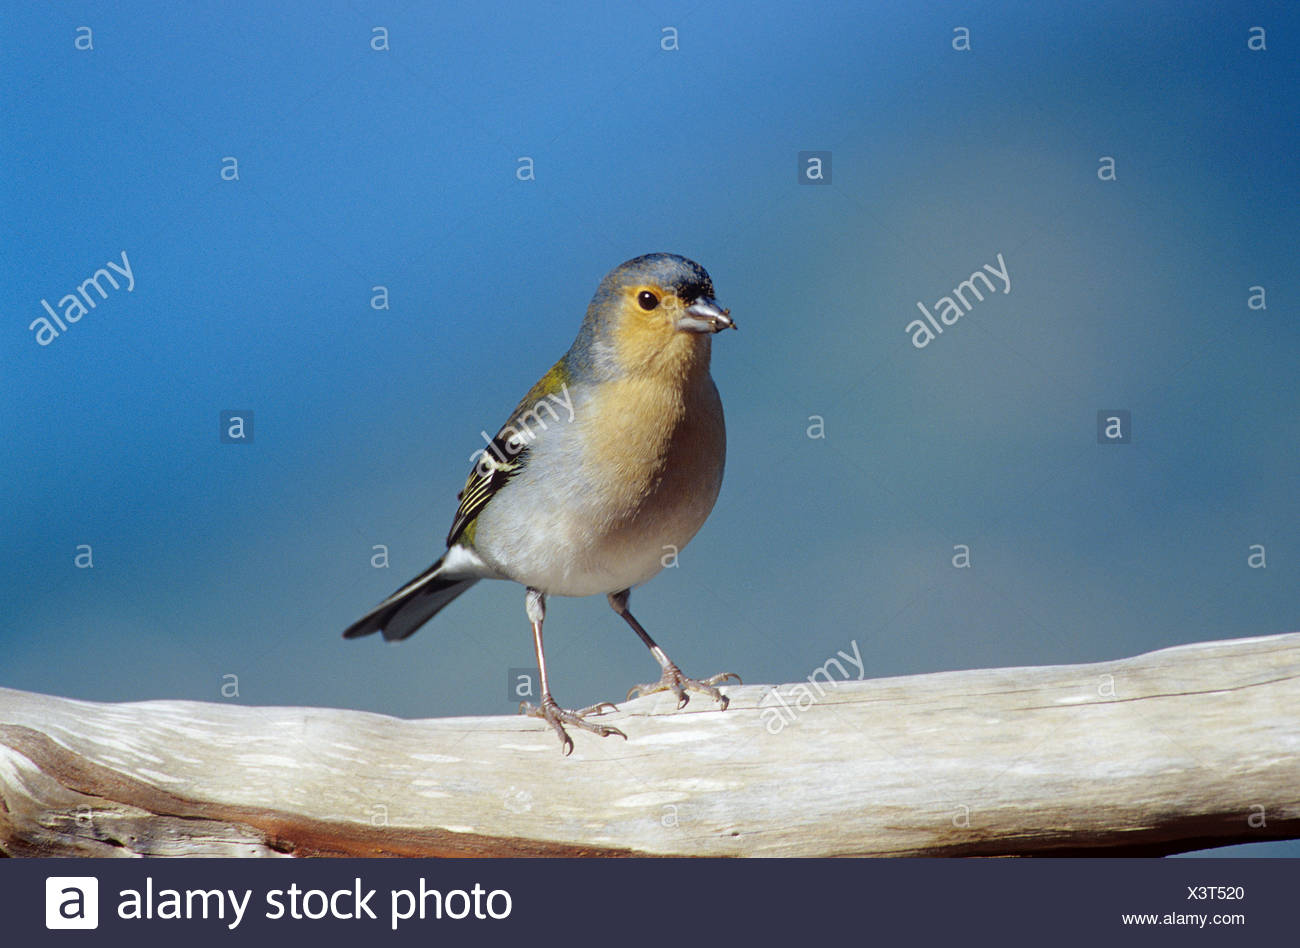 madeira chaffinch standing on branch Fringilla coelebs maderensis - Stock Image